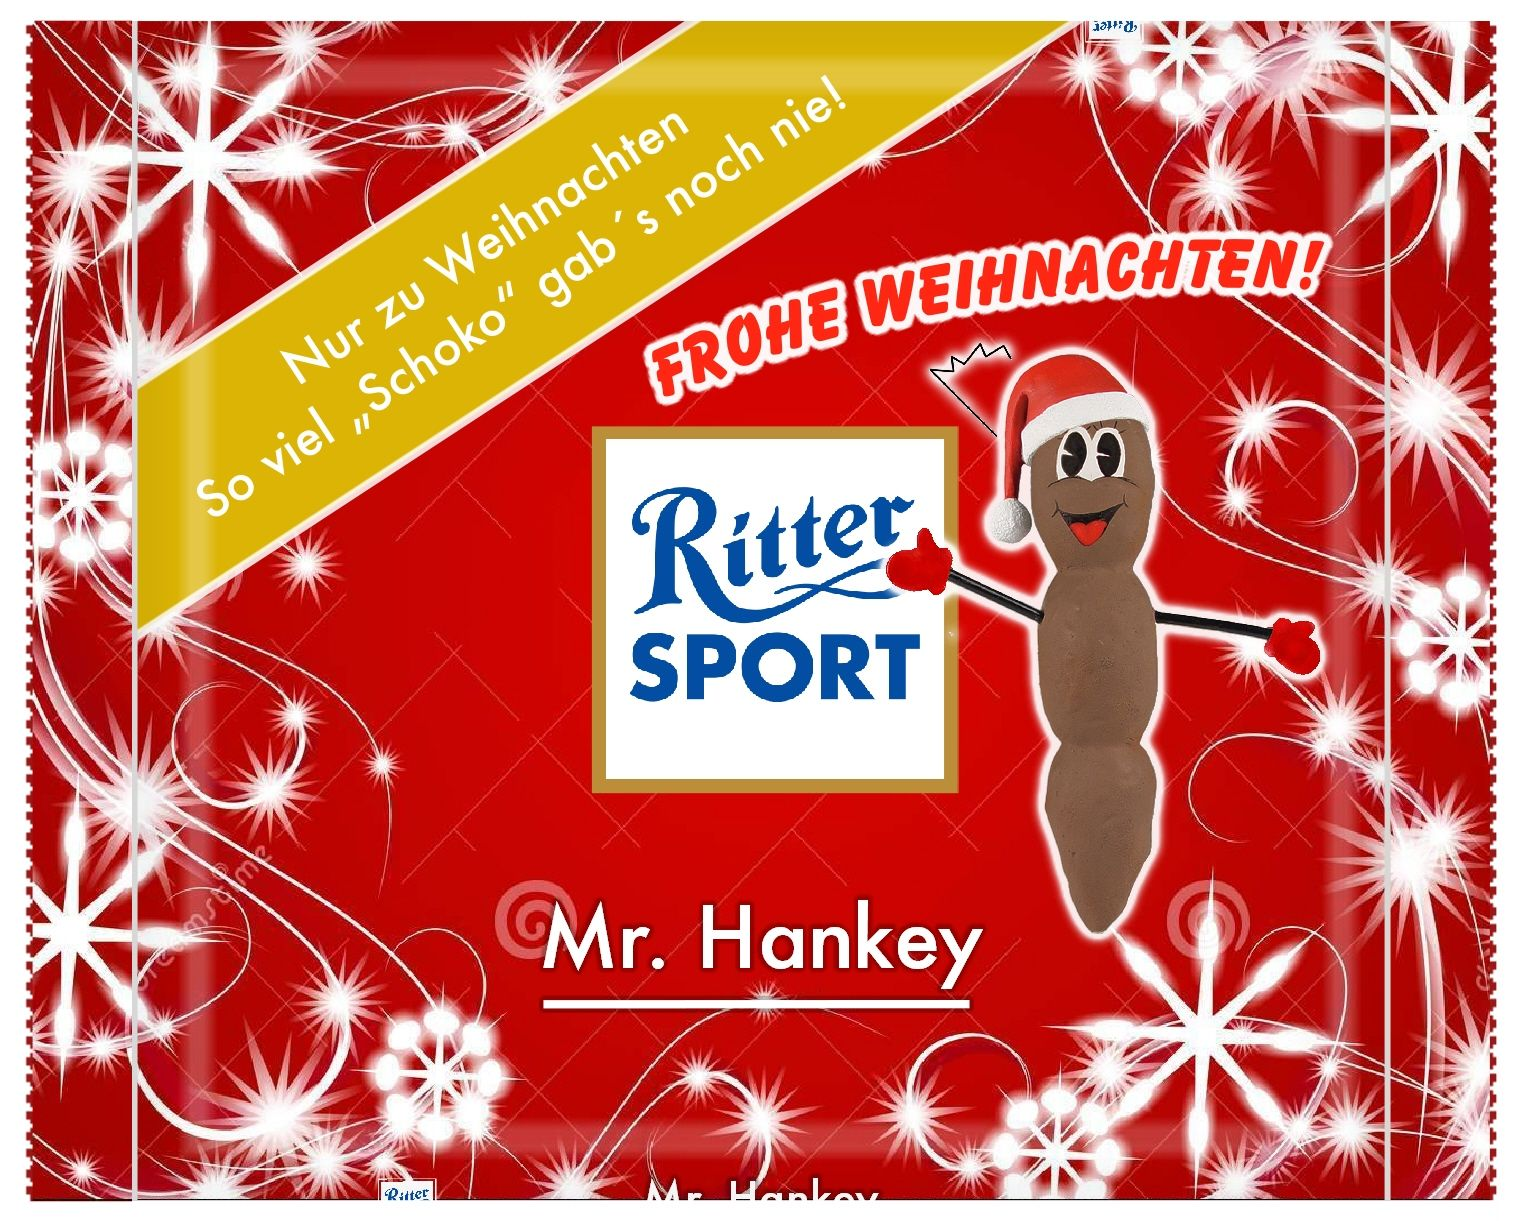 ritter sport mr hankey frohe weihnachten ritter. Black Bedroom Furniture Sets. Home Design Ideas